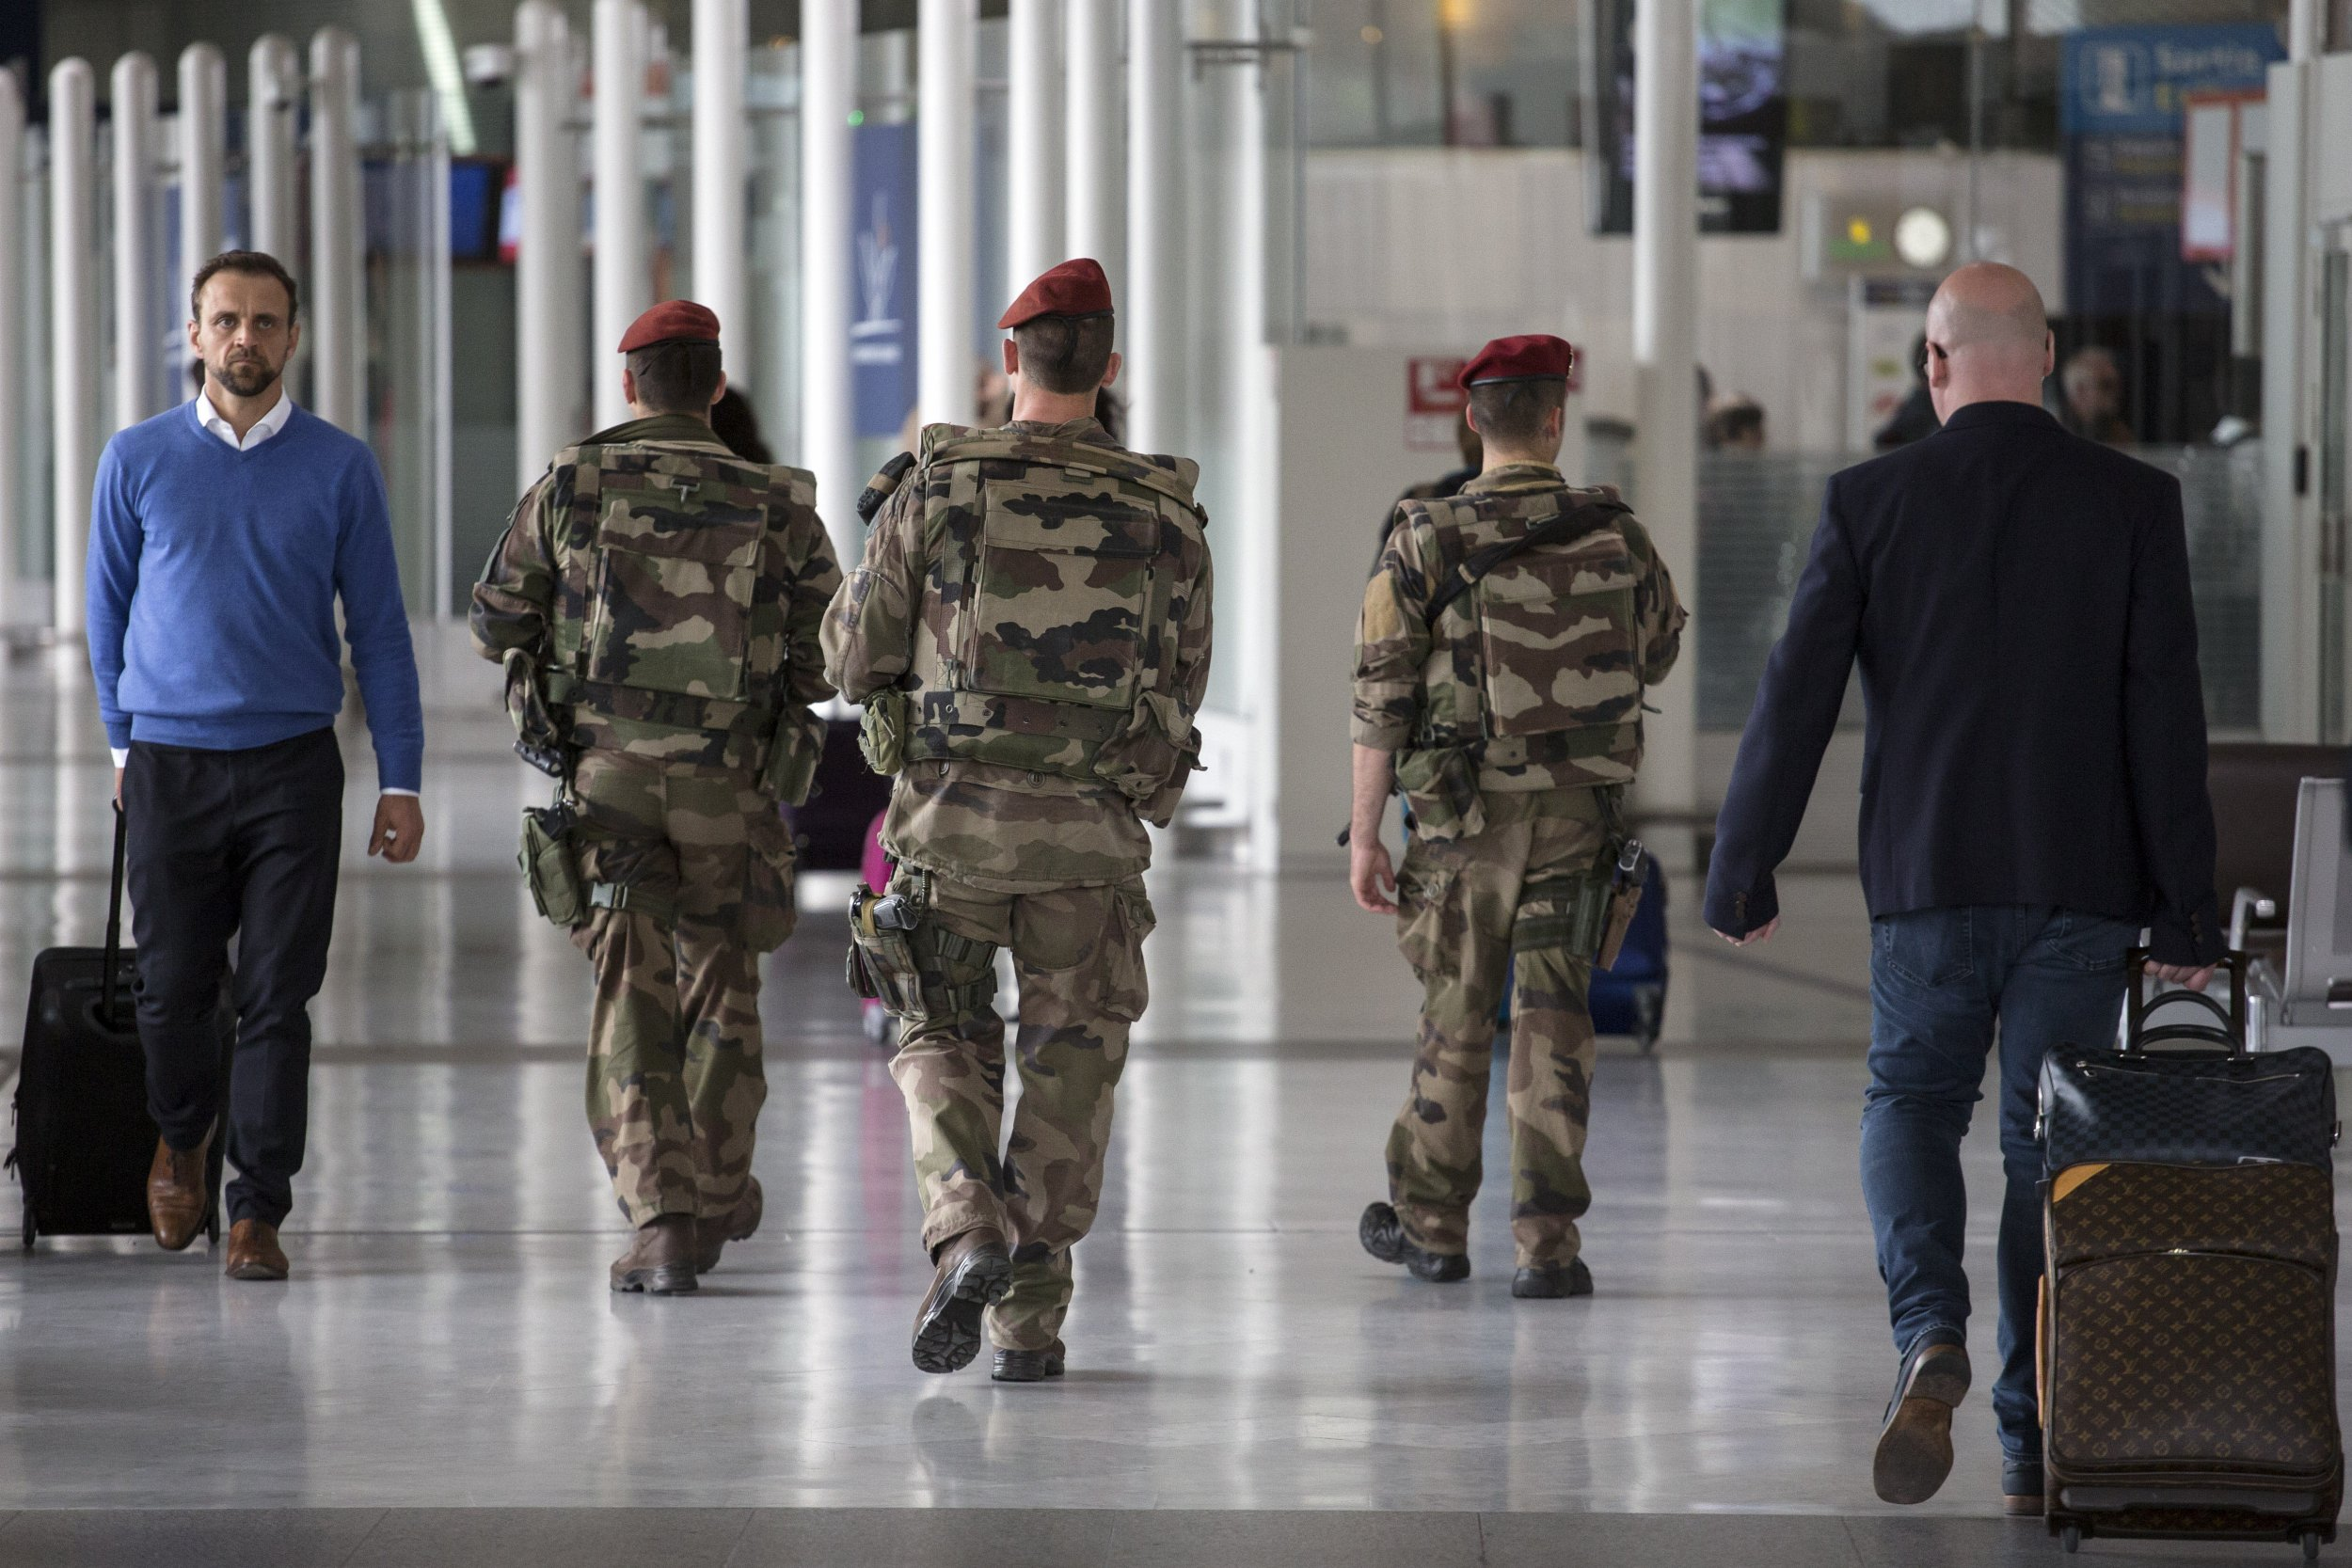 EgyptAir crash: What security is like at airport where flight took off